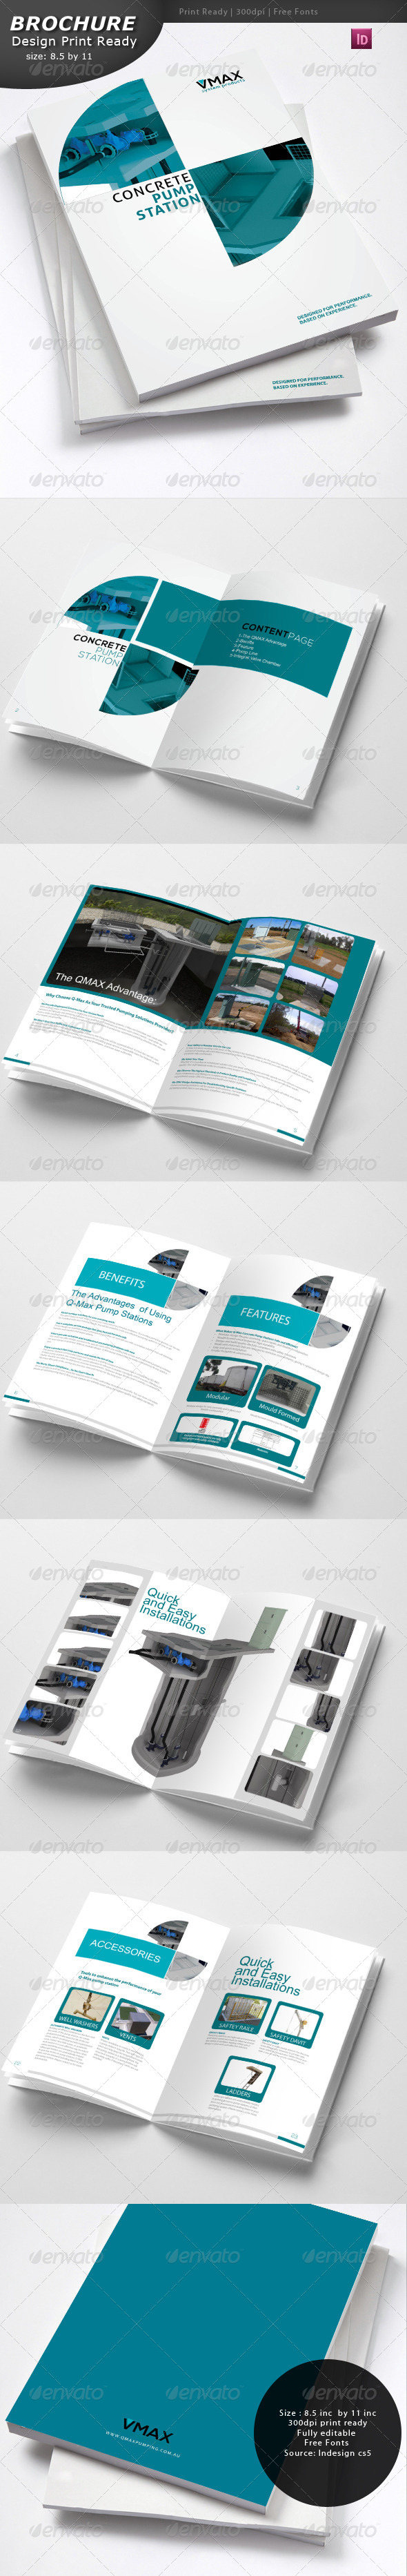 thiet-ke-brochure-in-an